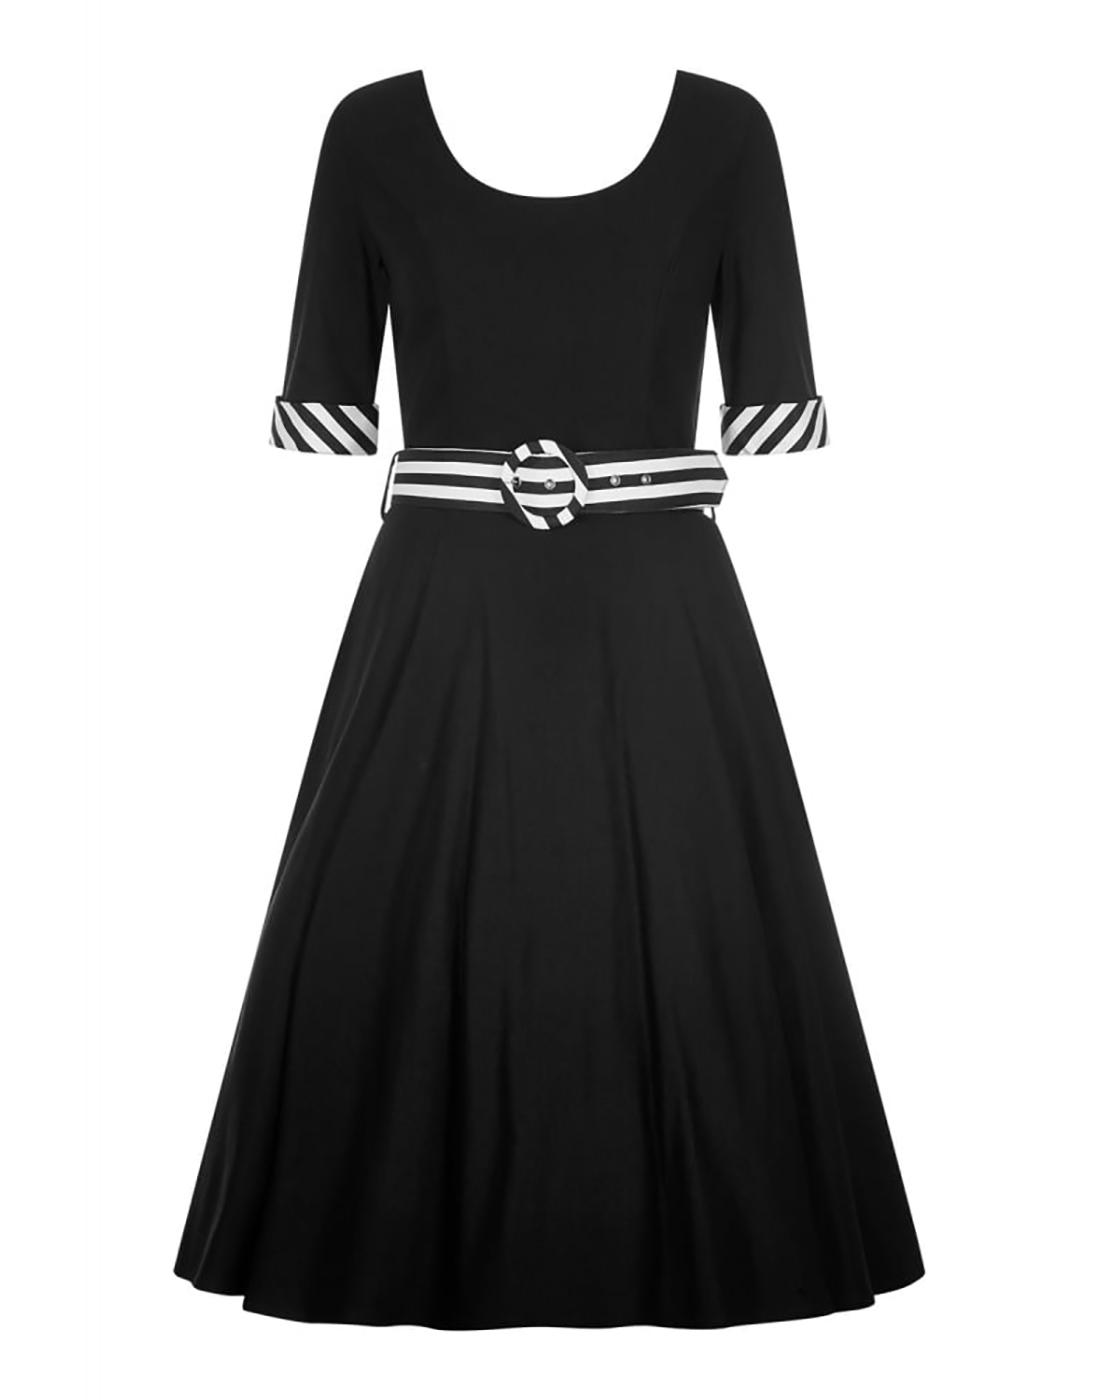 June COLLECTIF Retro 50s Vintage Doll Dress Black